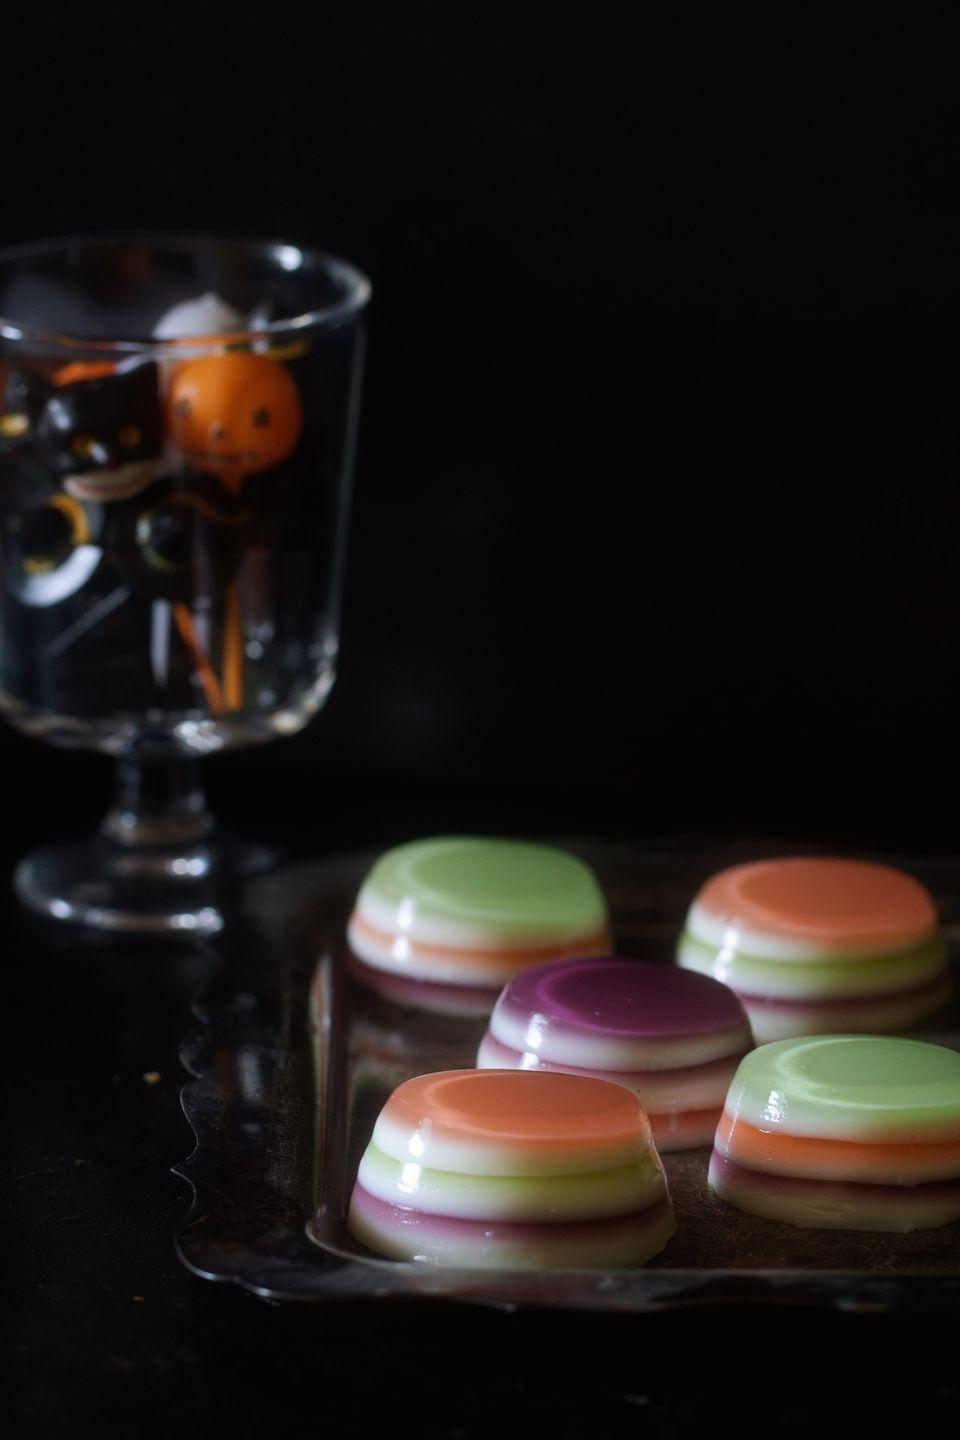 "<p>Get the monster mash started with this boozy treat.</p><p>Get the recipe from <a href=""https://www.delish.com/cooking/recipe-ideas/recipes/a43941/halloween-jell-o-shots-recipe/"" rel=""nofollow noopener"" target=""_blank"" data-ylk=""slk:Delish"" class=""link rapid-noclick-resp"">Delish</a>.</p>"